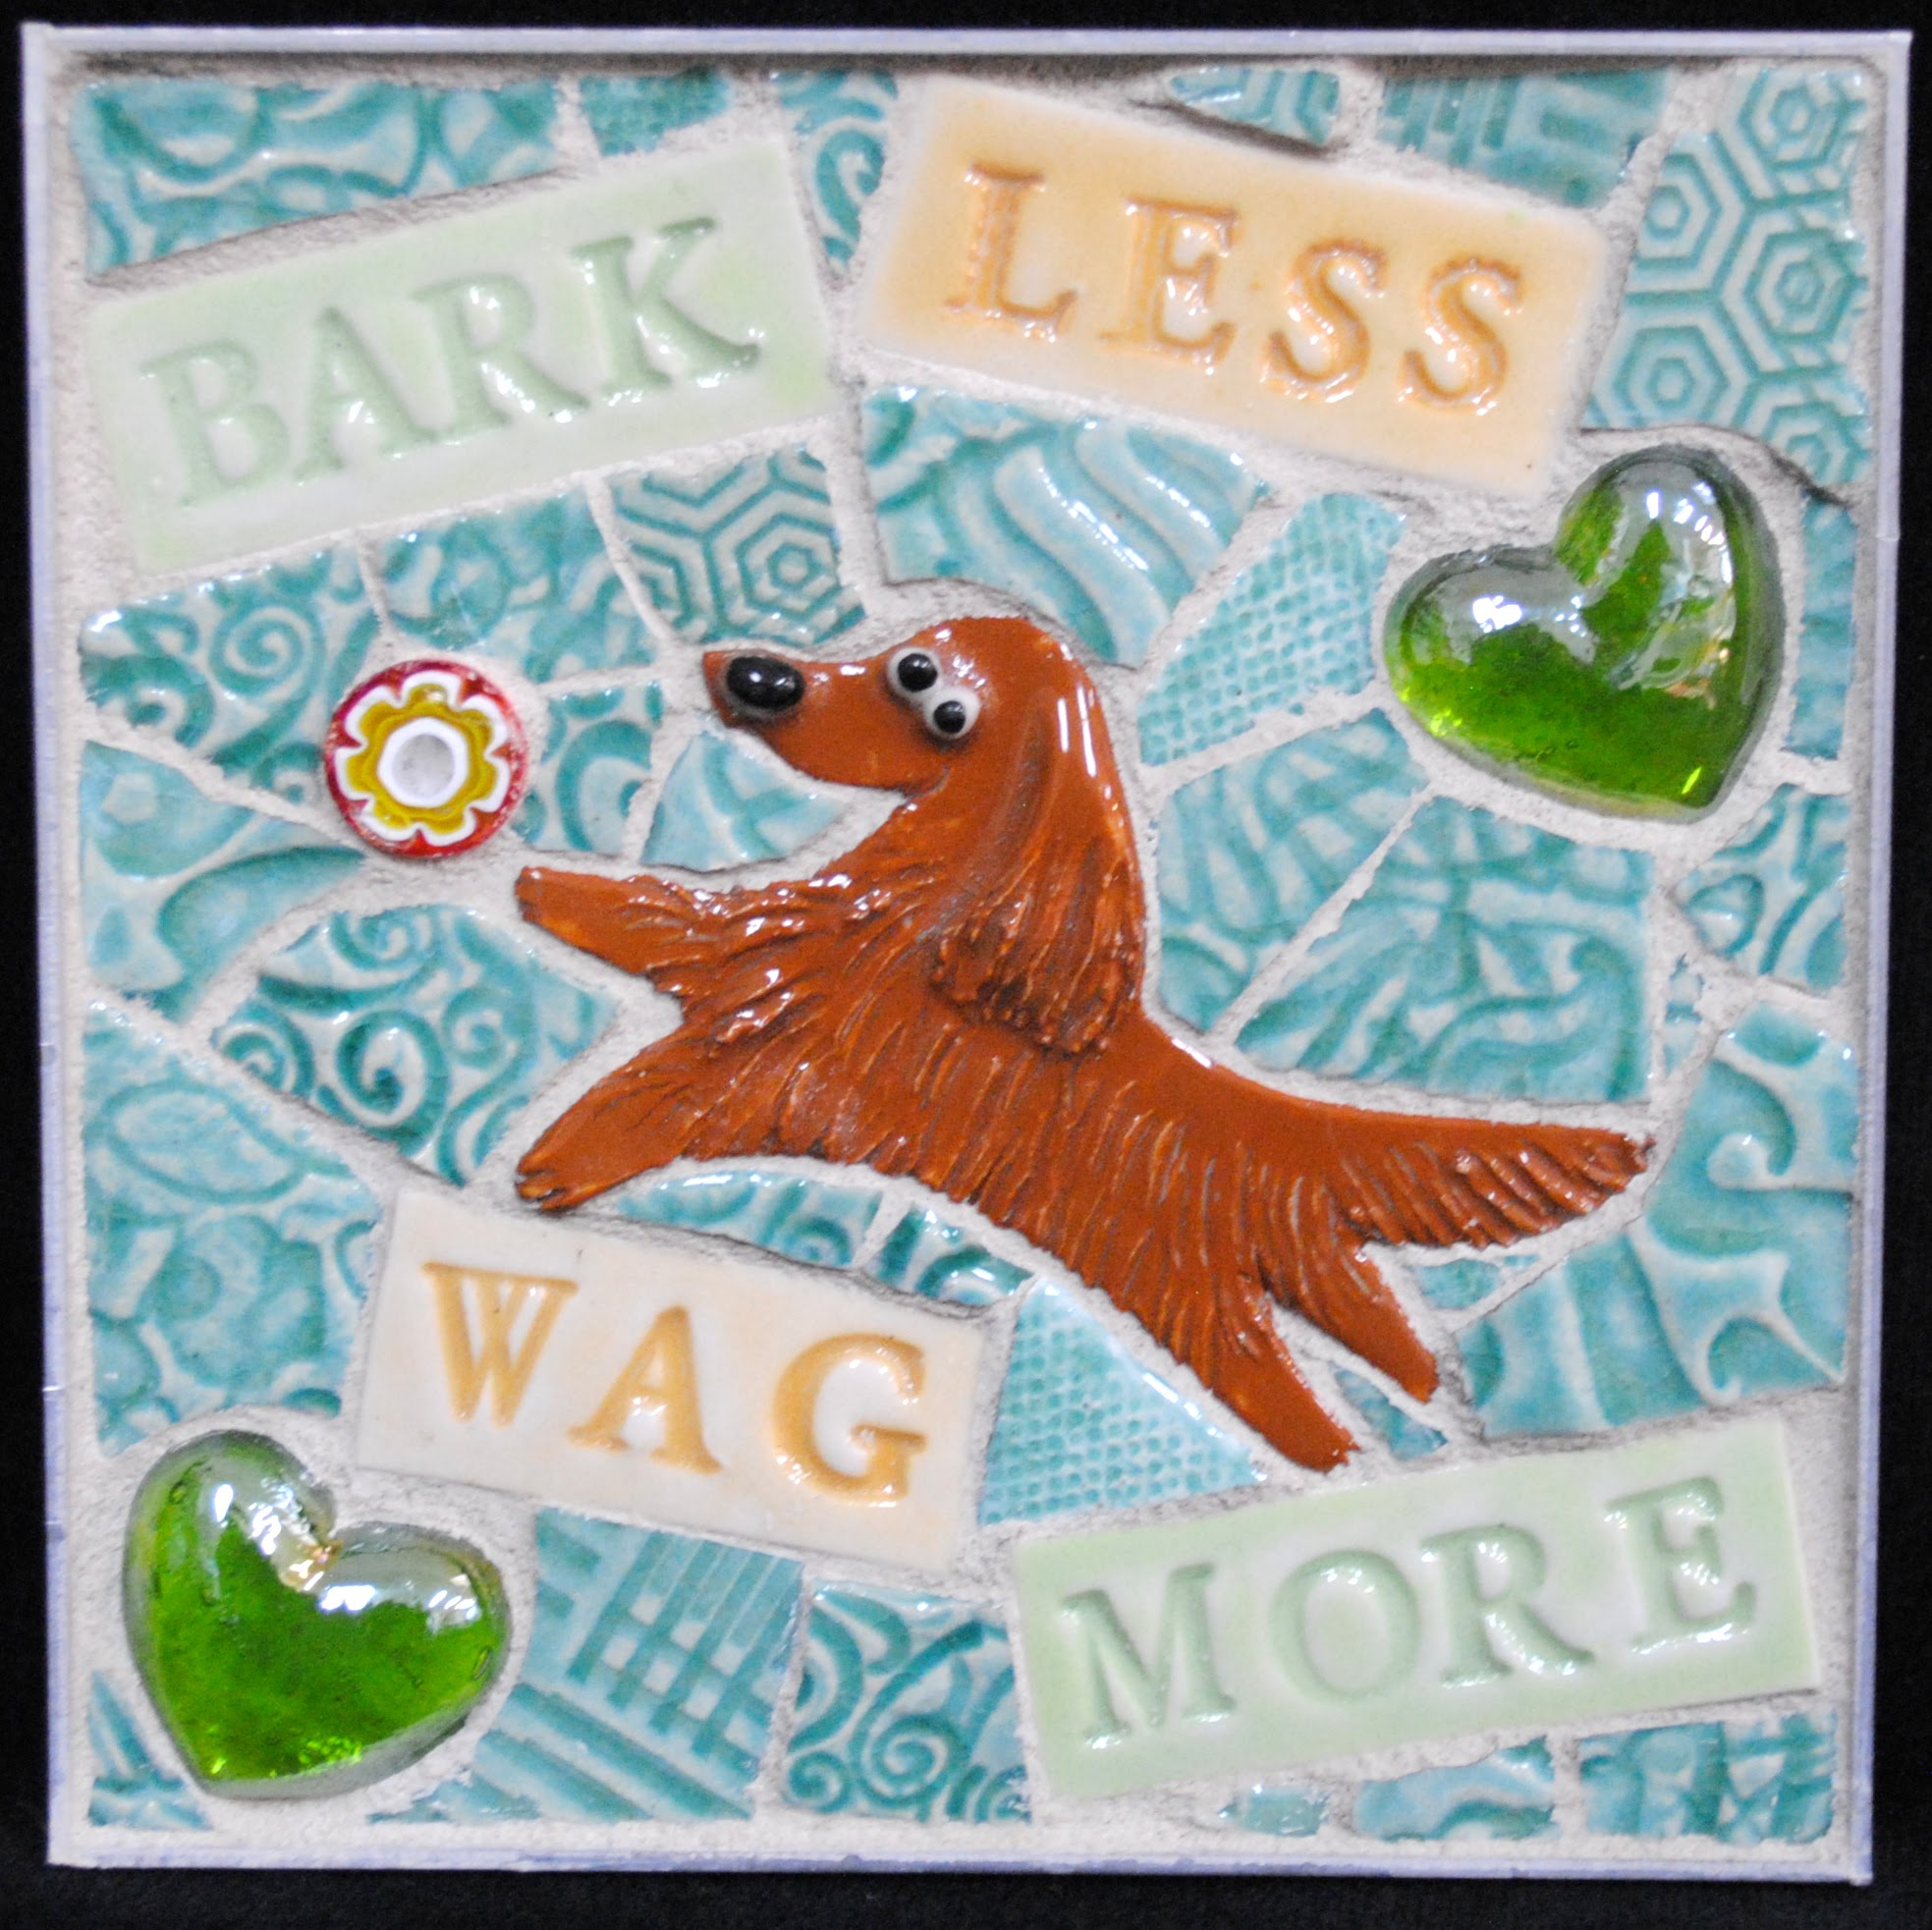 Bark Less Wag More Golden Retriever Mini Mosaic by Brenda Pokorny